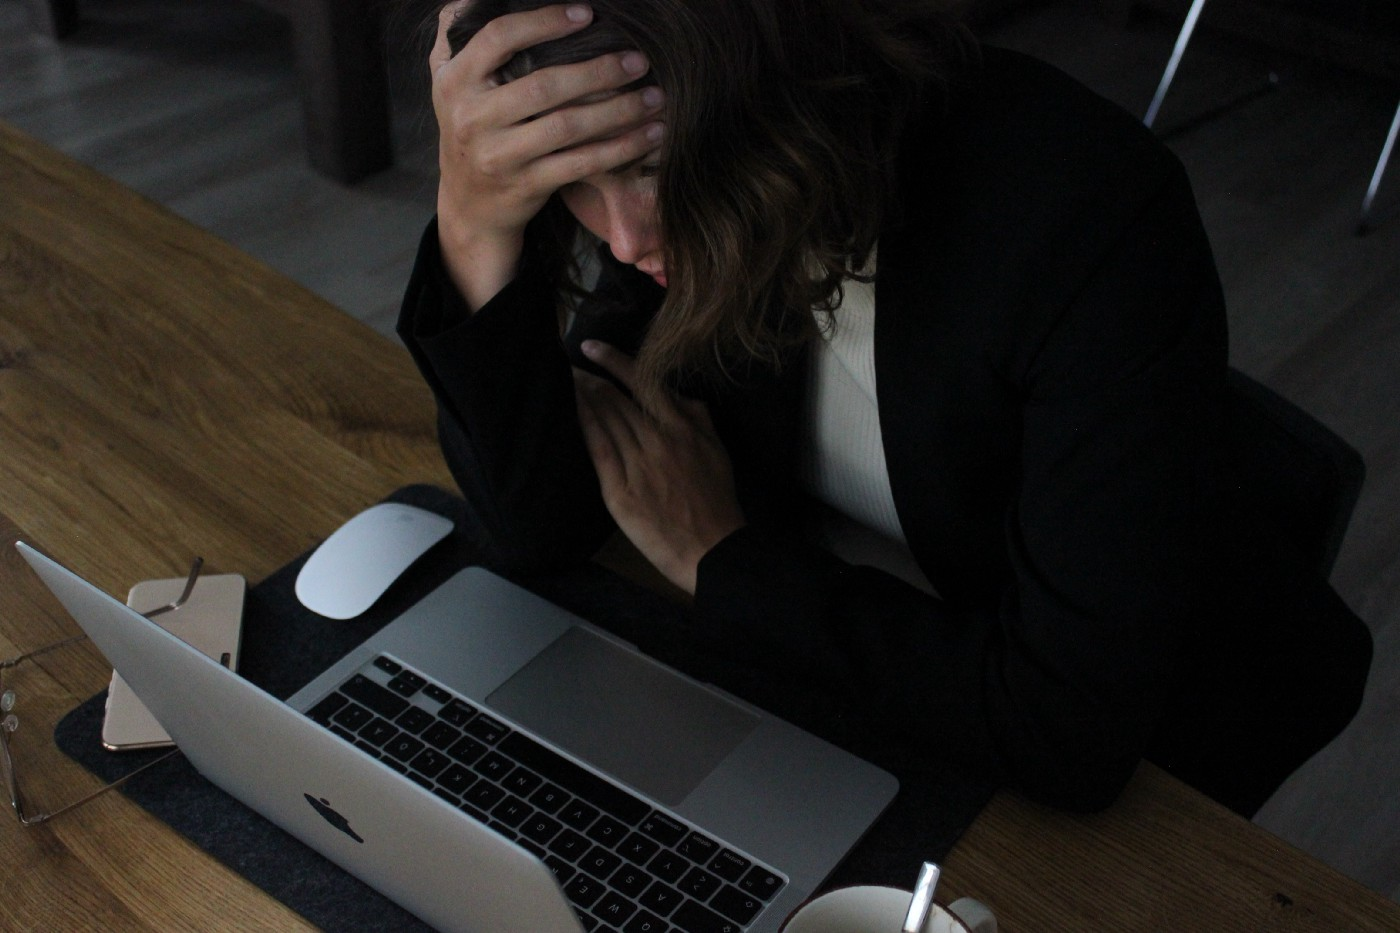 Woman leaning over laptop with her head in her hand, looking sad and tired.